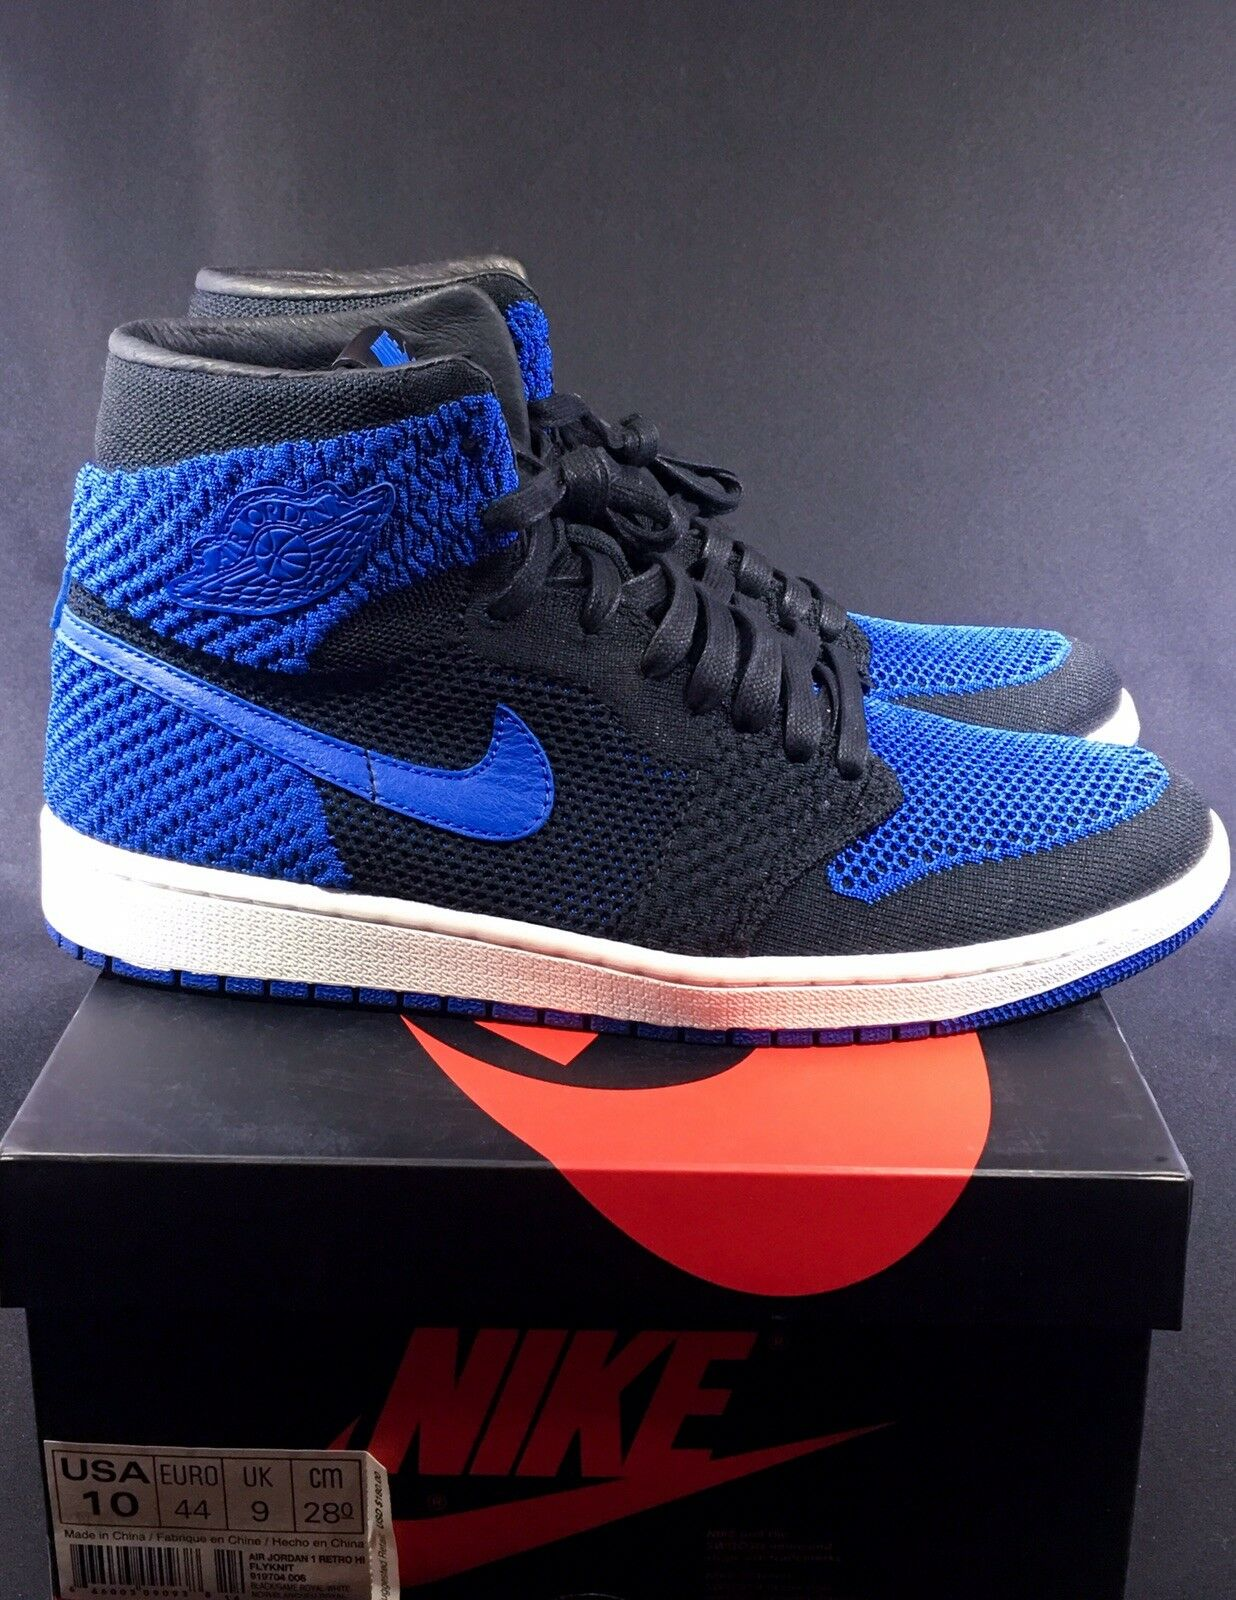 NIKE AIR JORDAN I RETRO 1 HI FLYKNIT HIGH OG BLACK GAME ROYAL blueE WHITE BRED 10